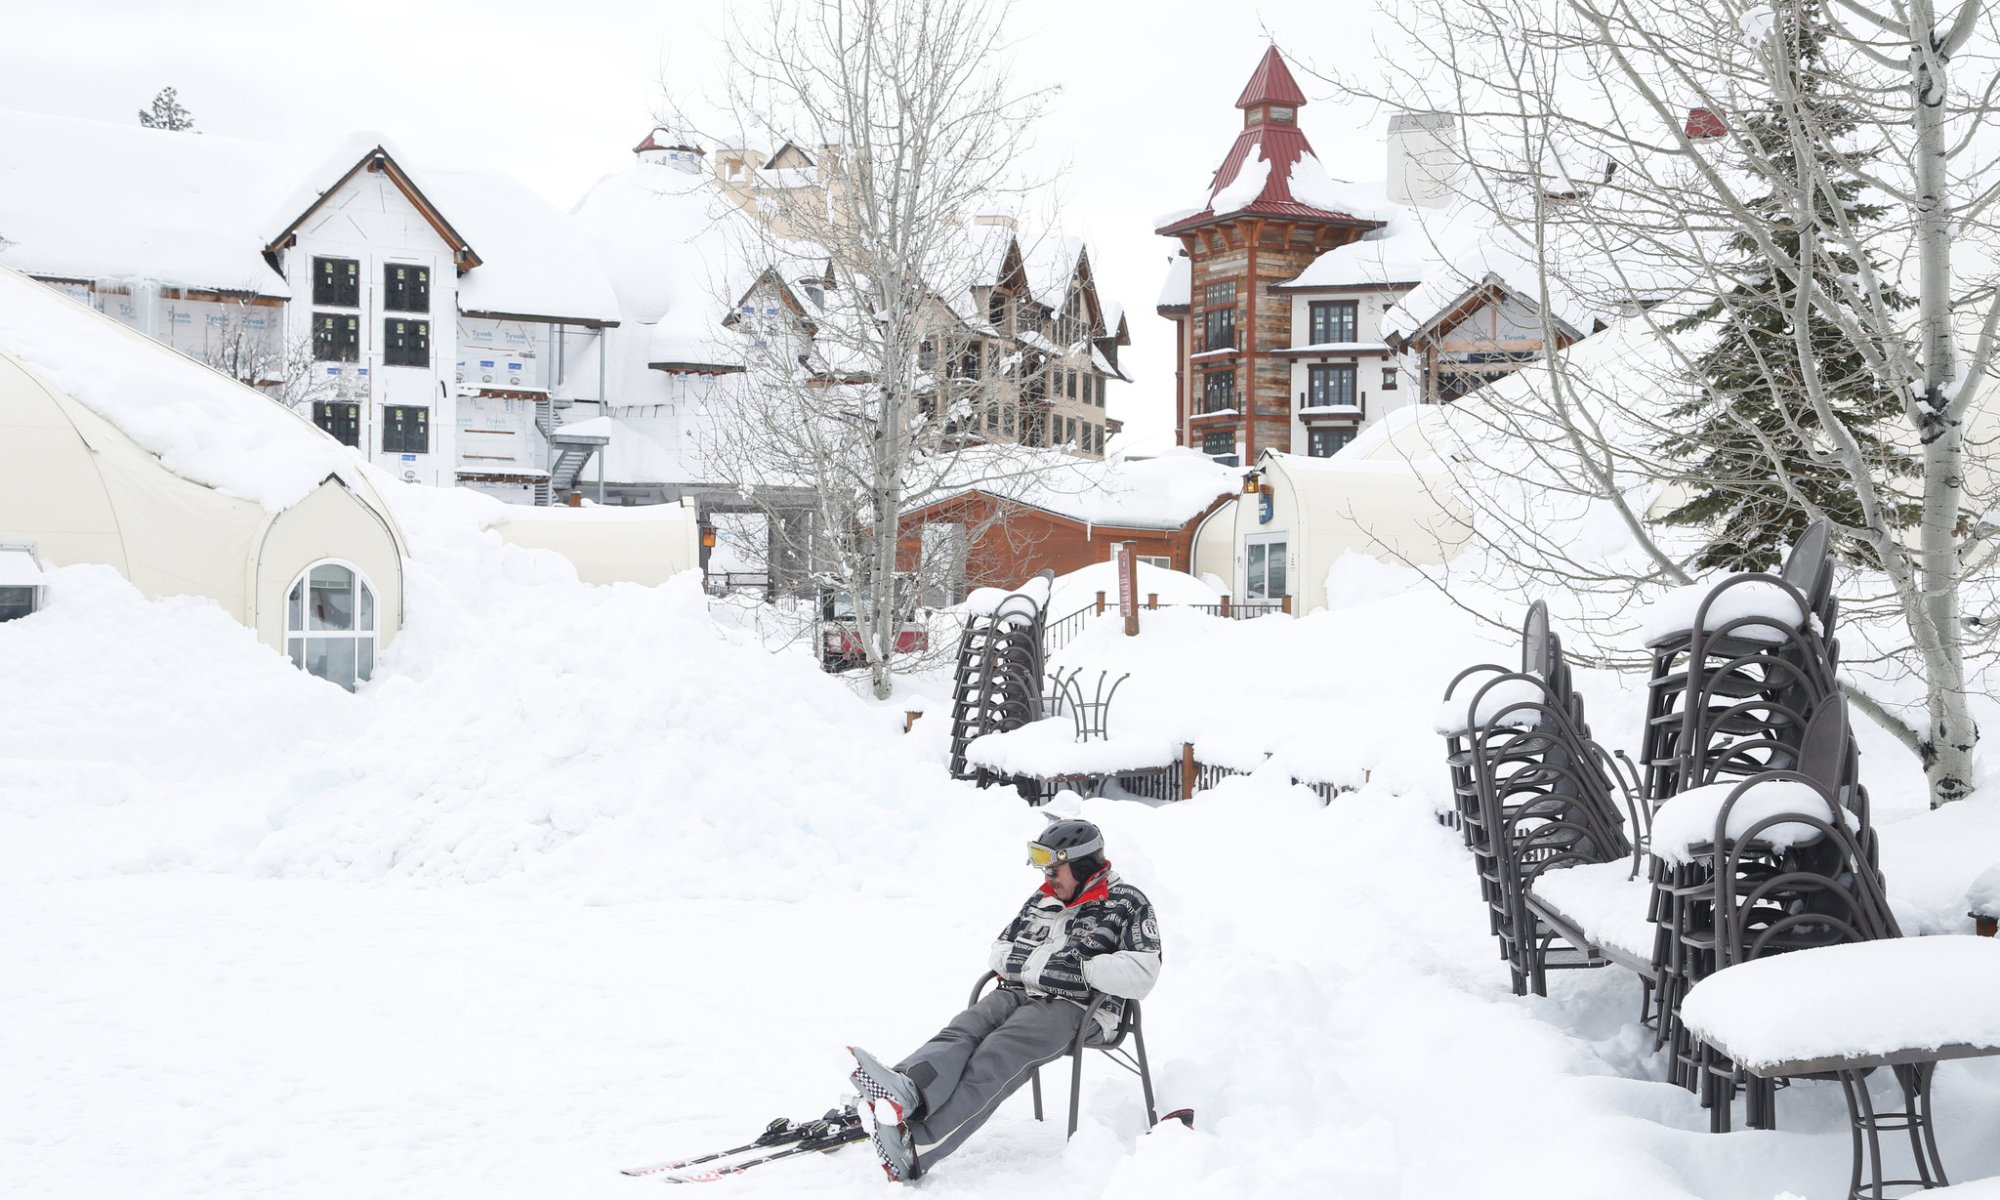 Tamarack Resort. Resort Industry Veterans get together to acquire Idaho's Tamarack Resort.